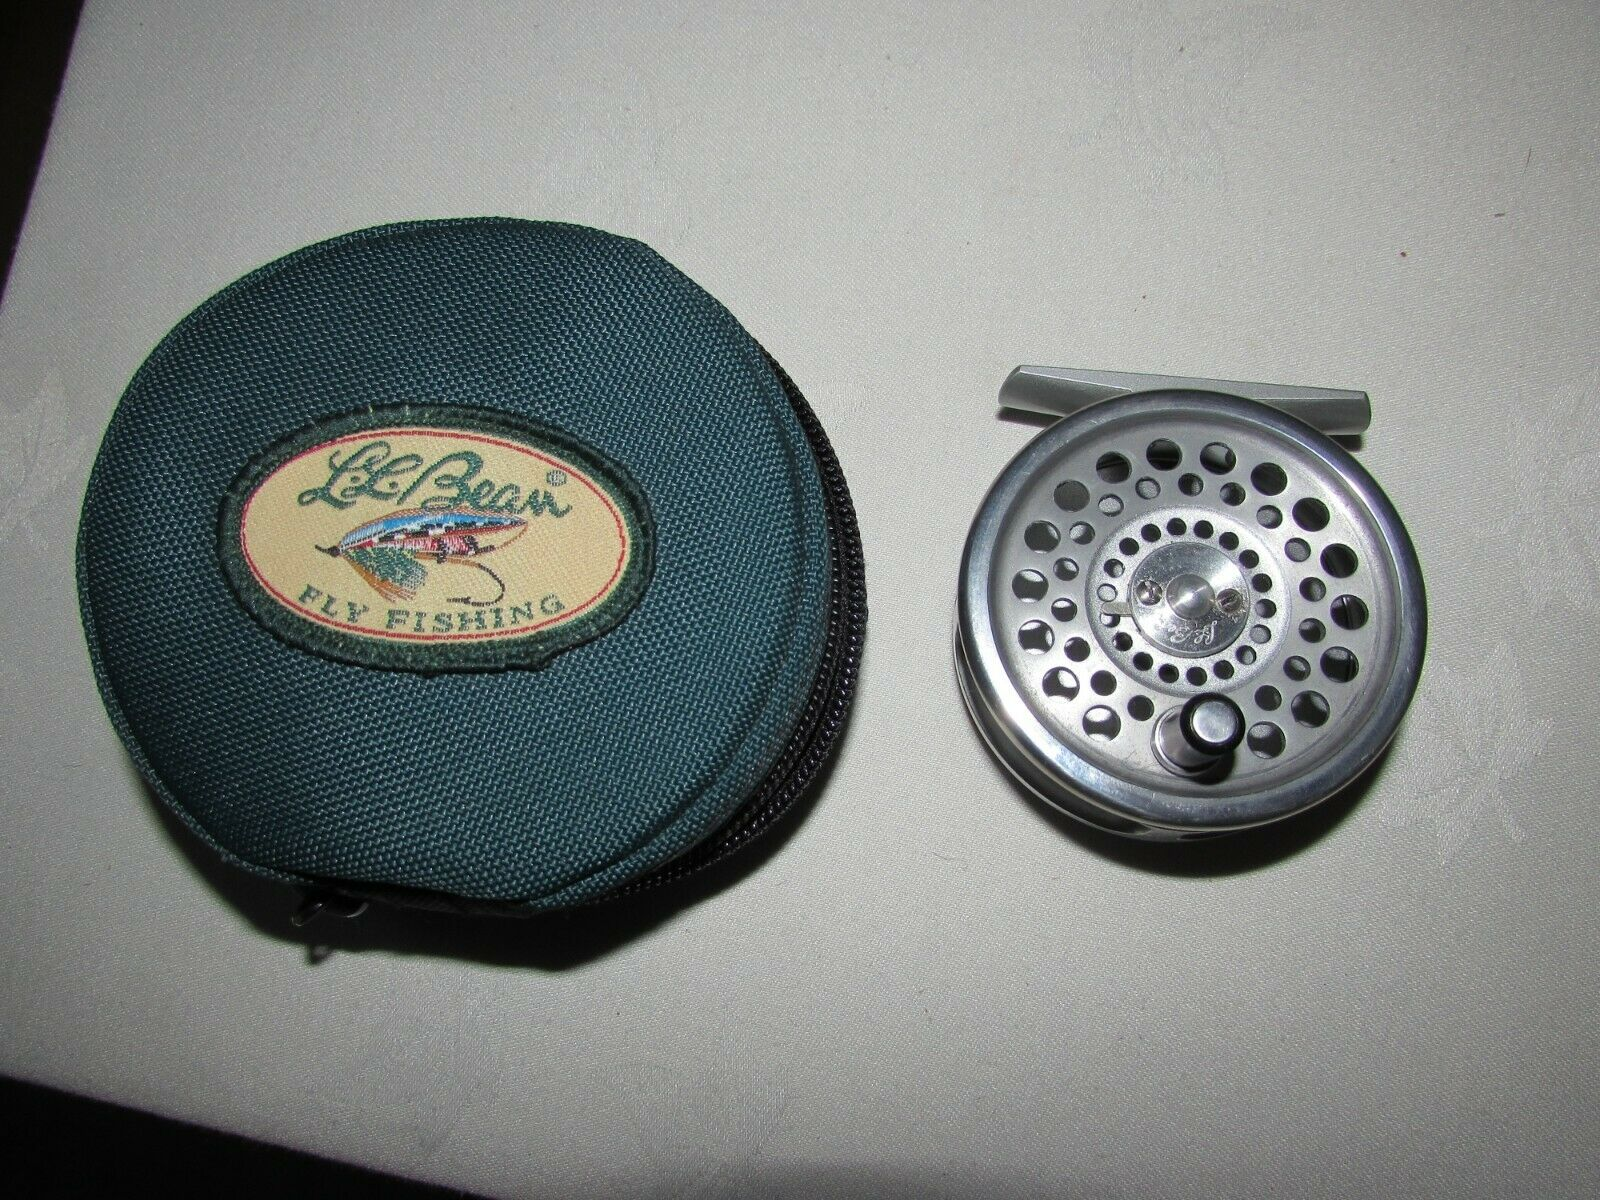 Original  vintage Hardy LL bean guide 3 4 marquis 4 trout fly fishing reel case  quality product